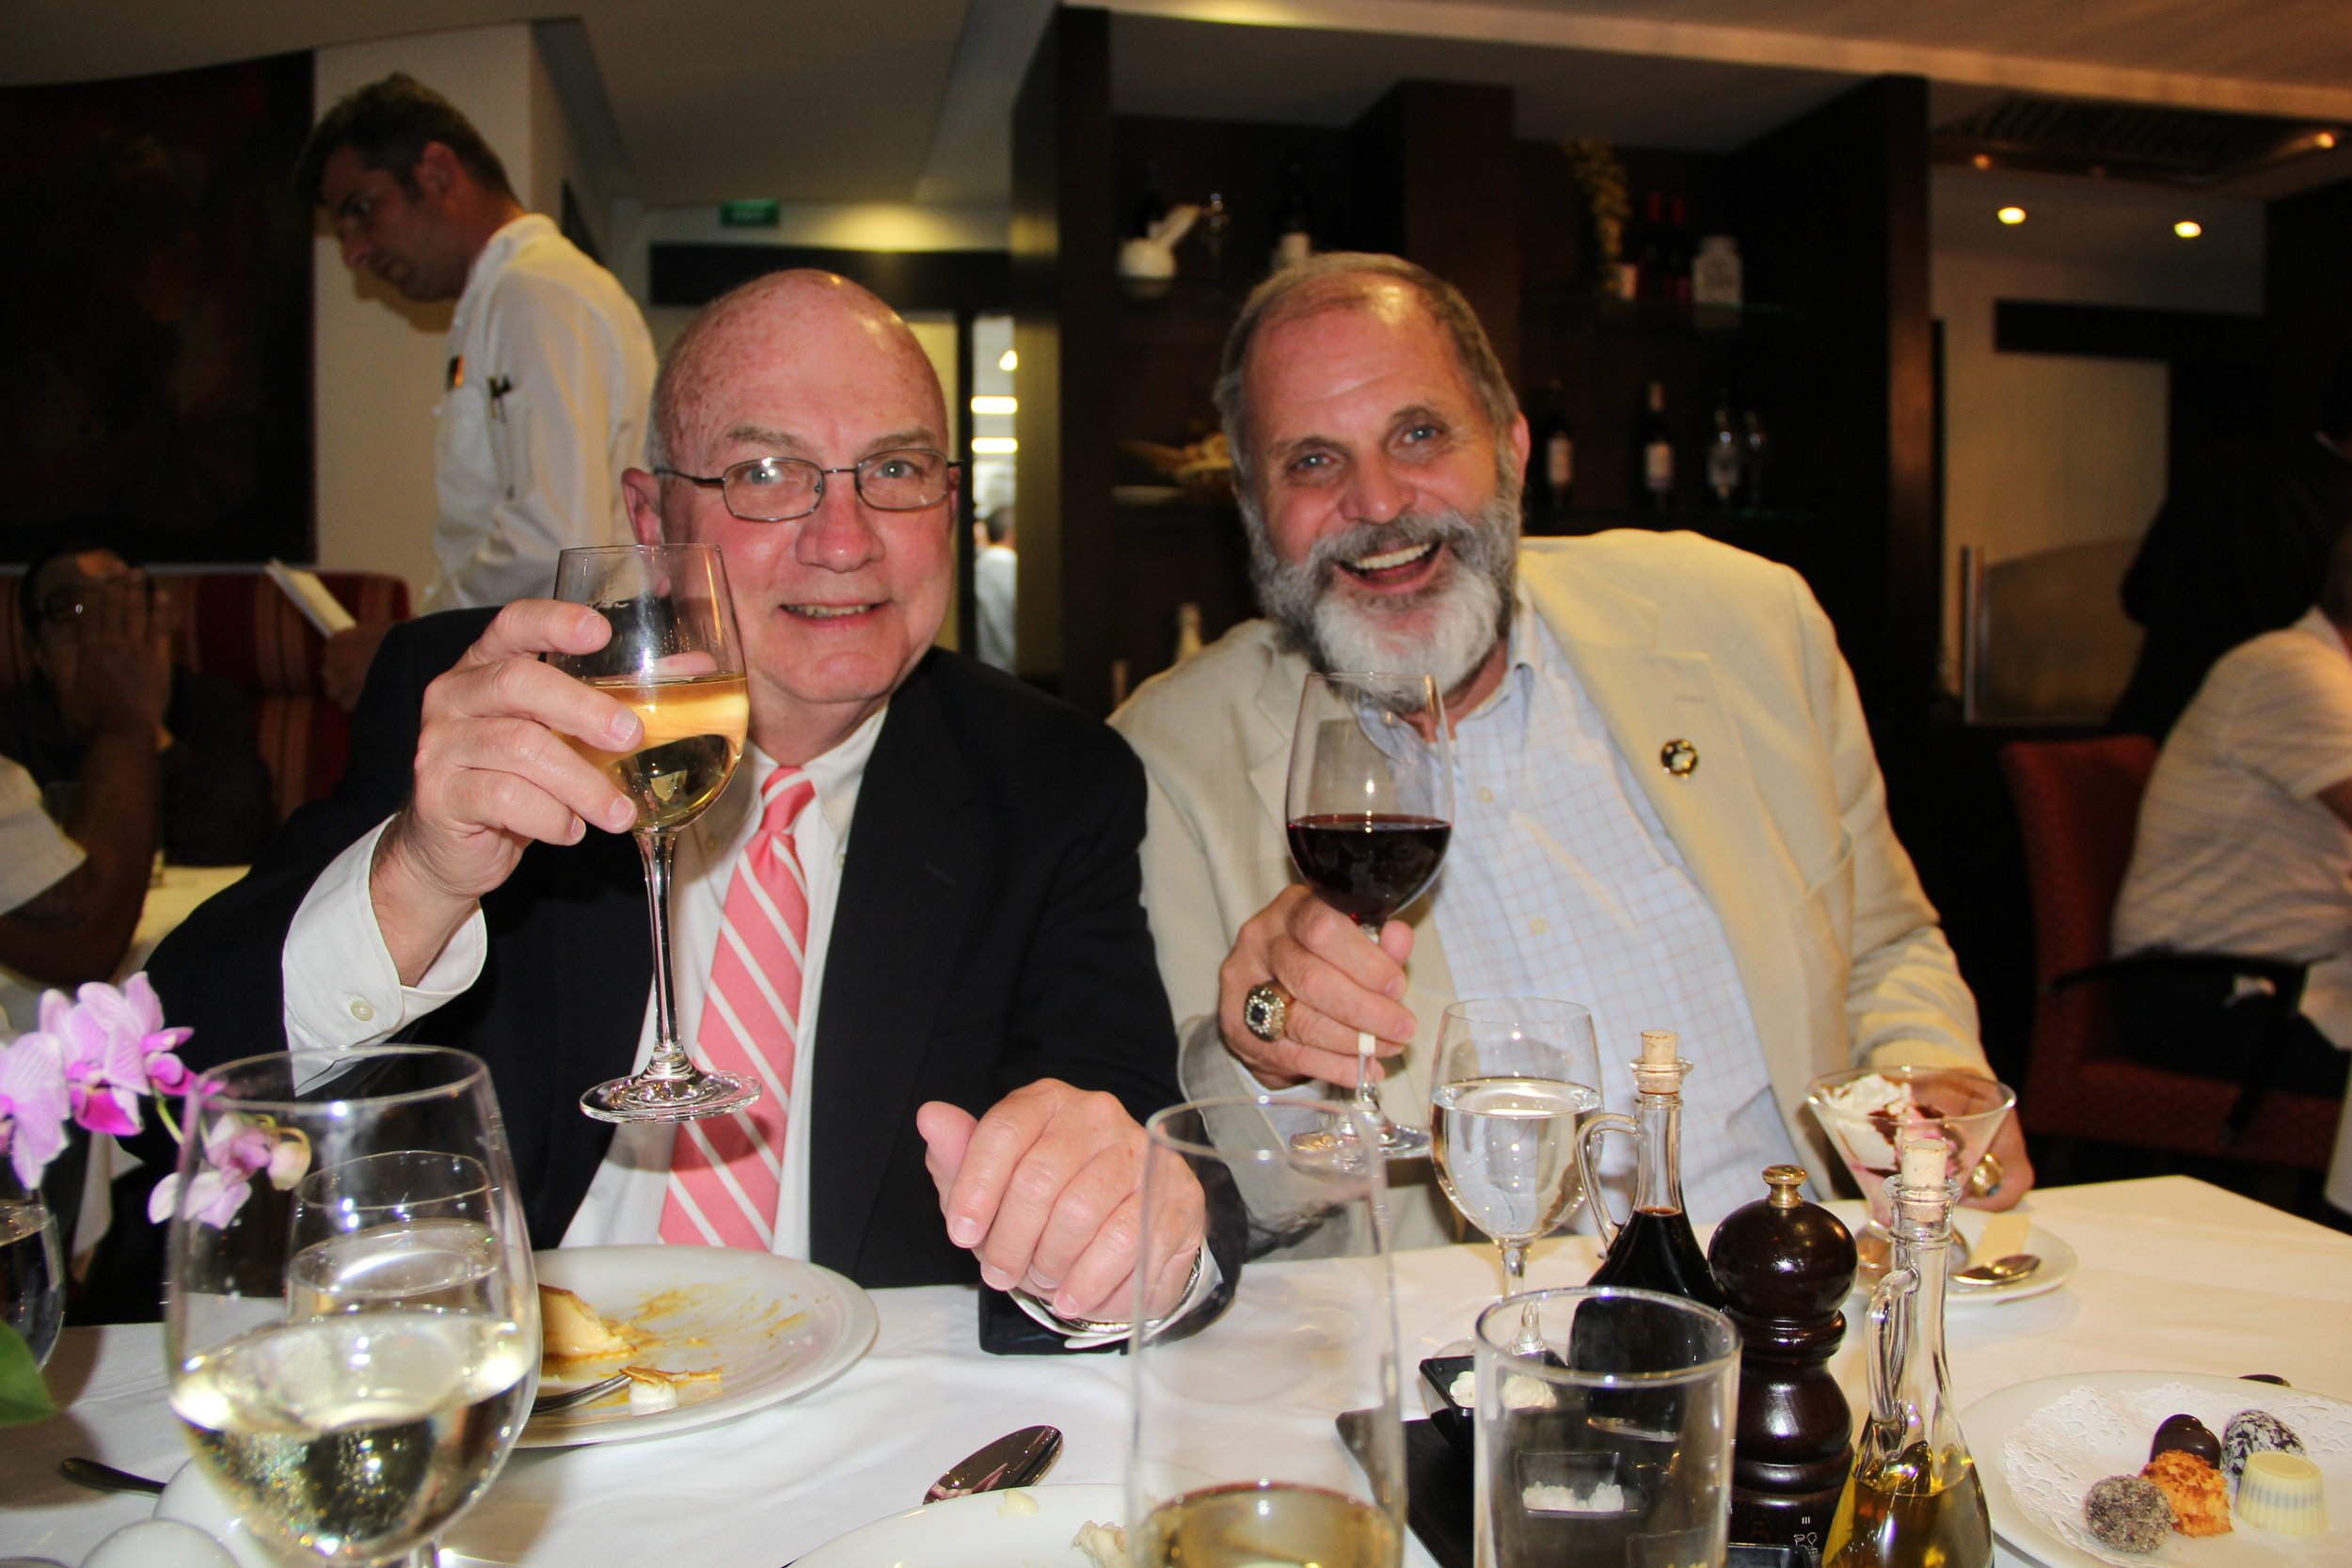 Jeff (my West Point classmate) and Hank share a glass of wine on an Amawaterways cruise 2018